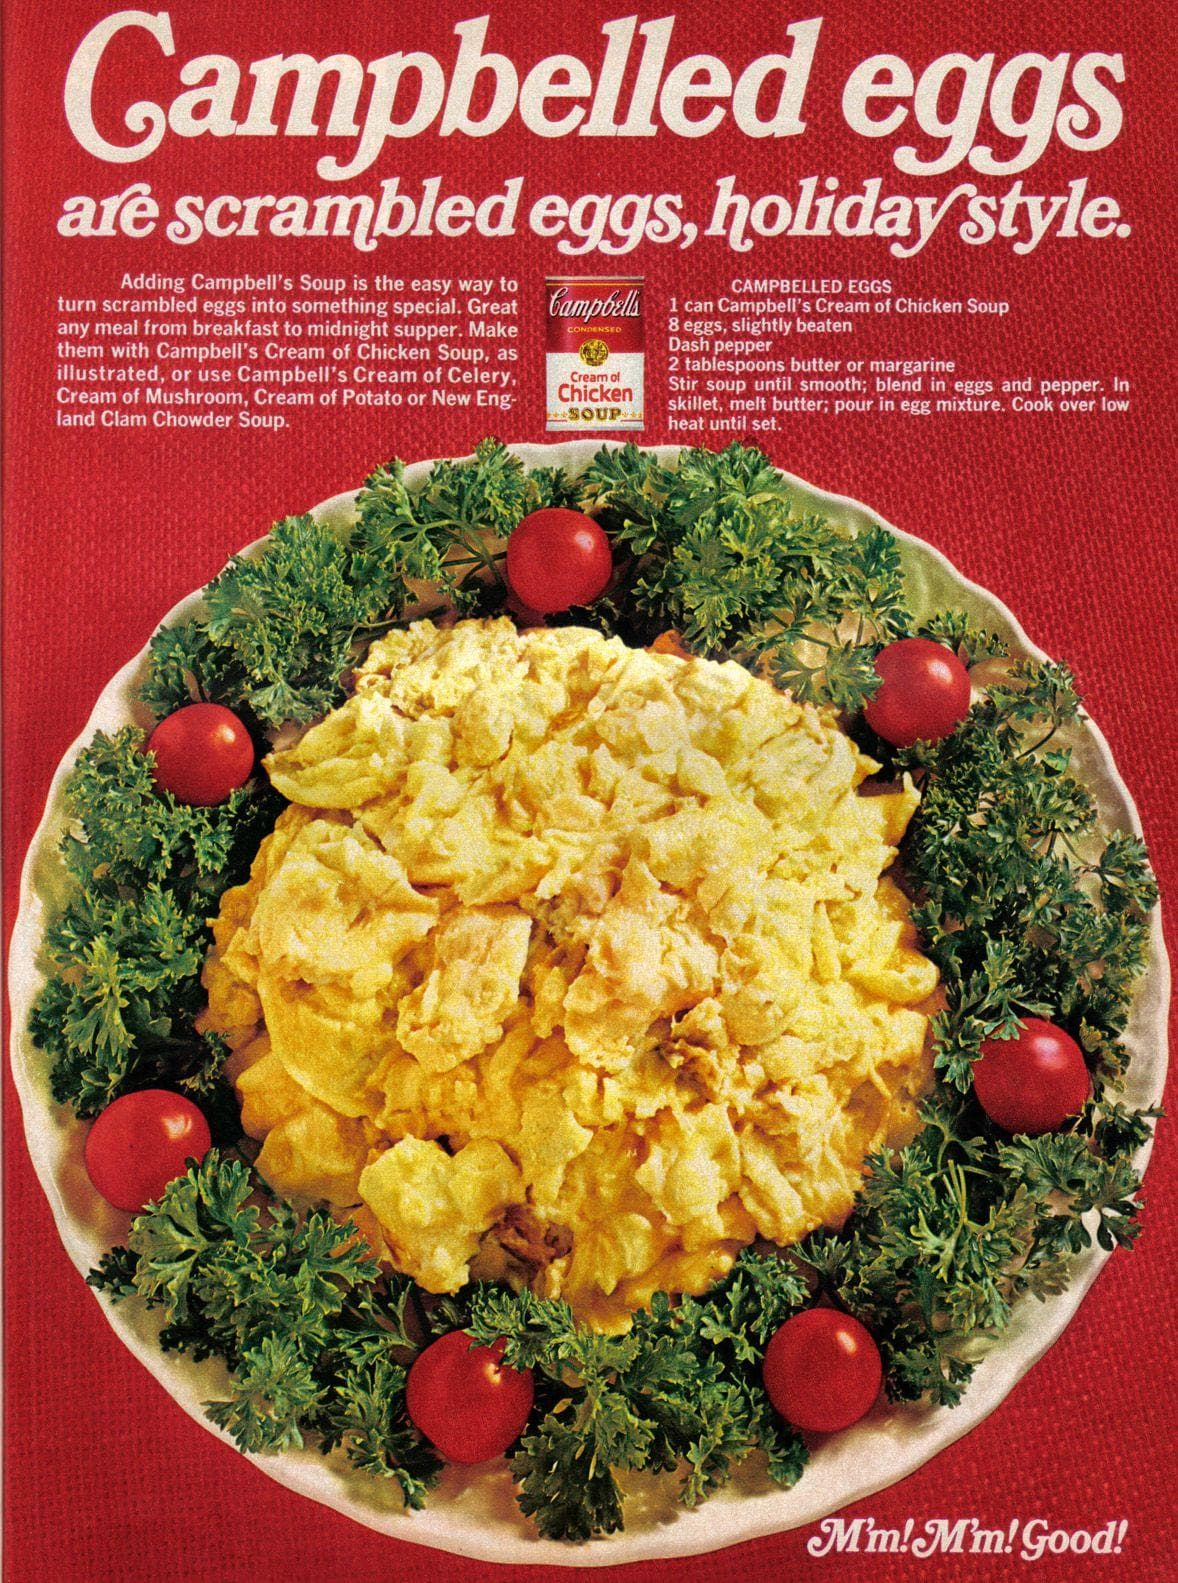 Campbelled Eggs on Random Weird Vintage Foods You'd Love At Your Holiday Party